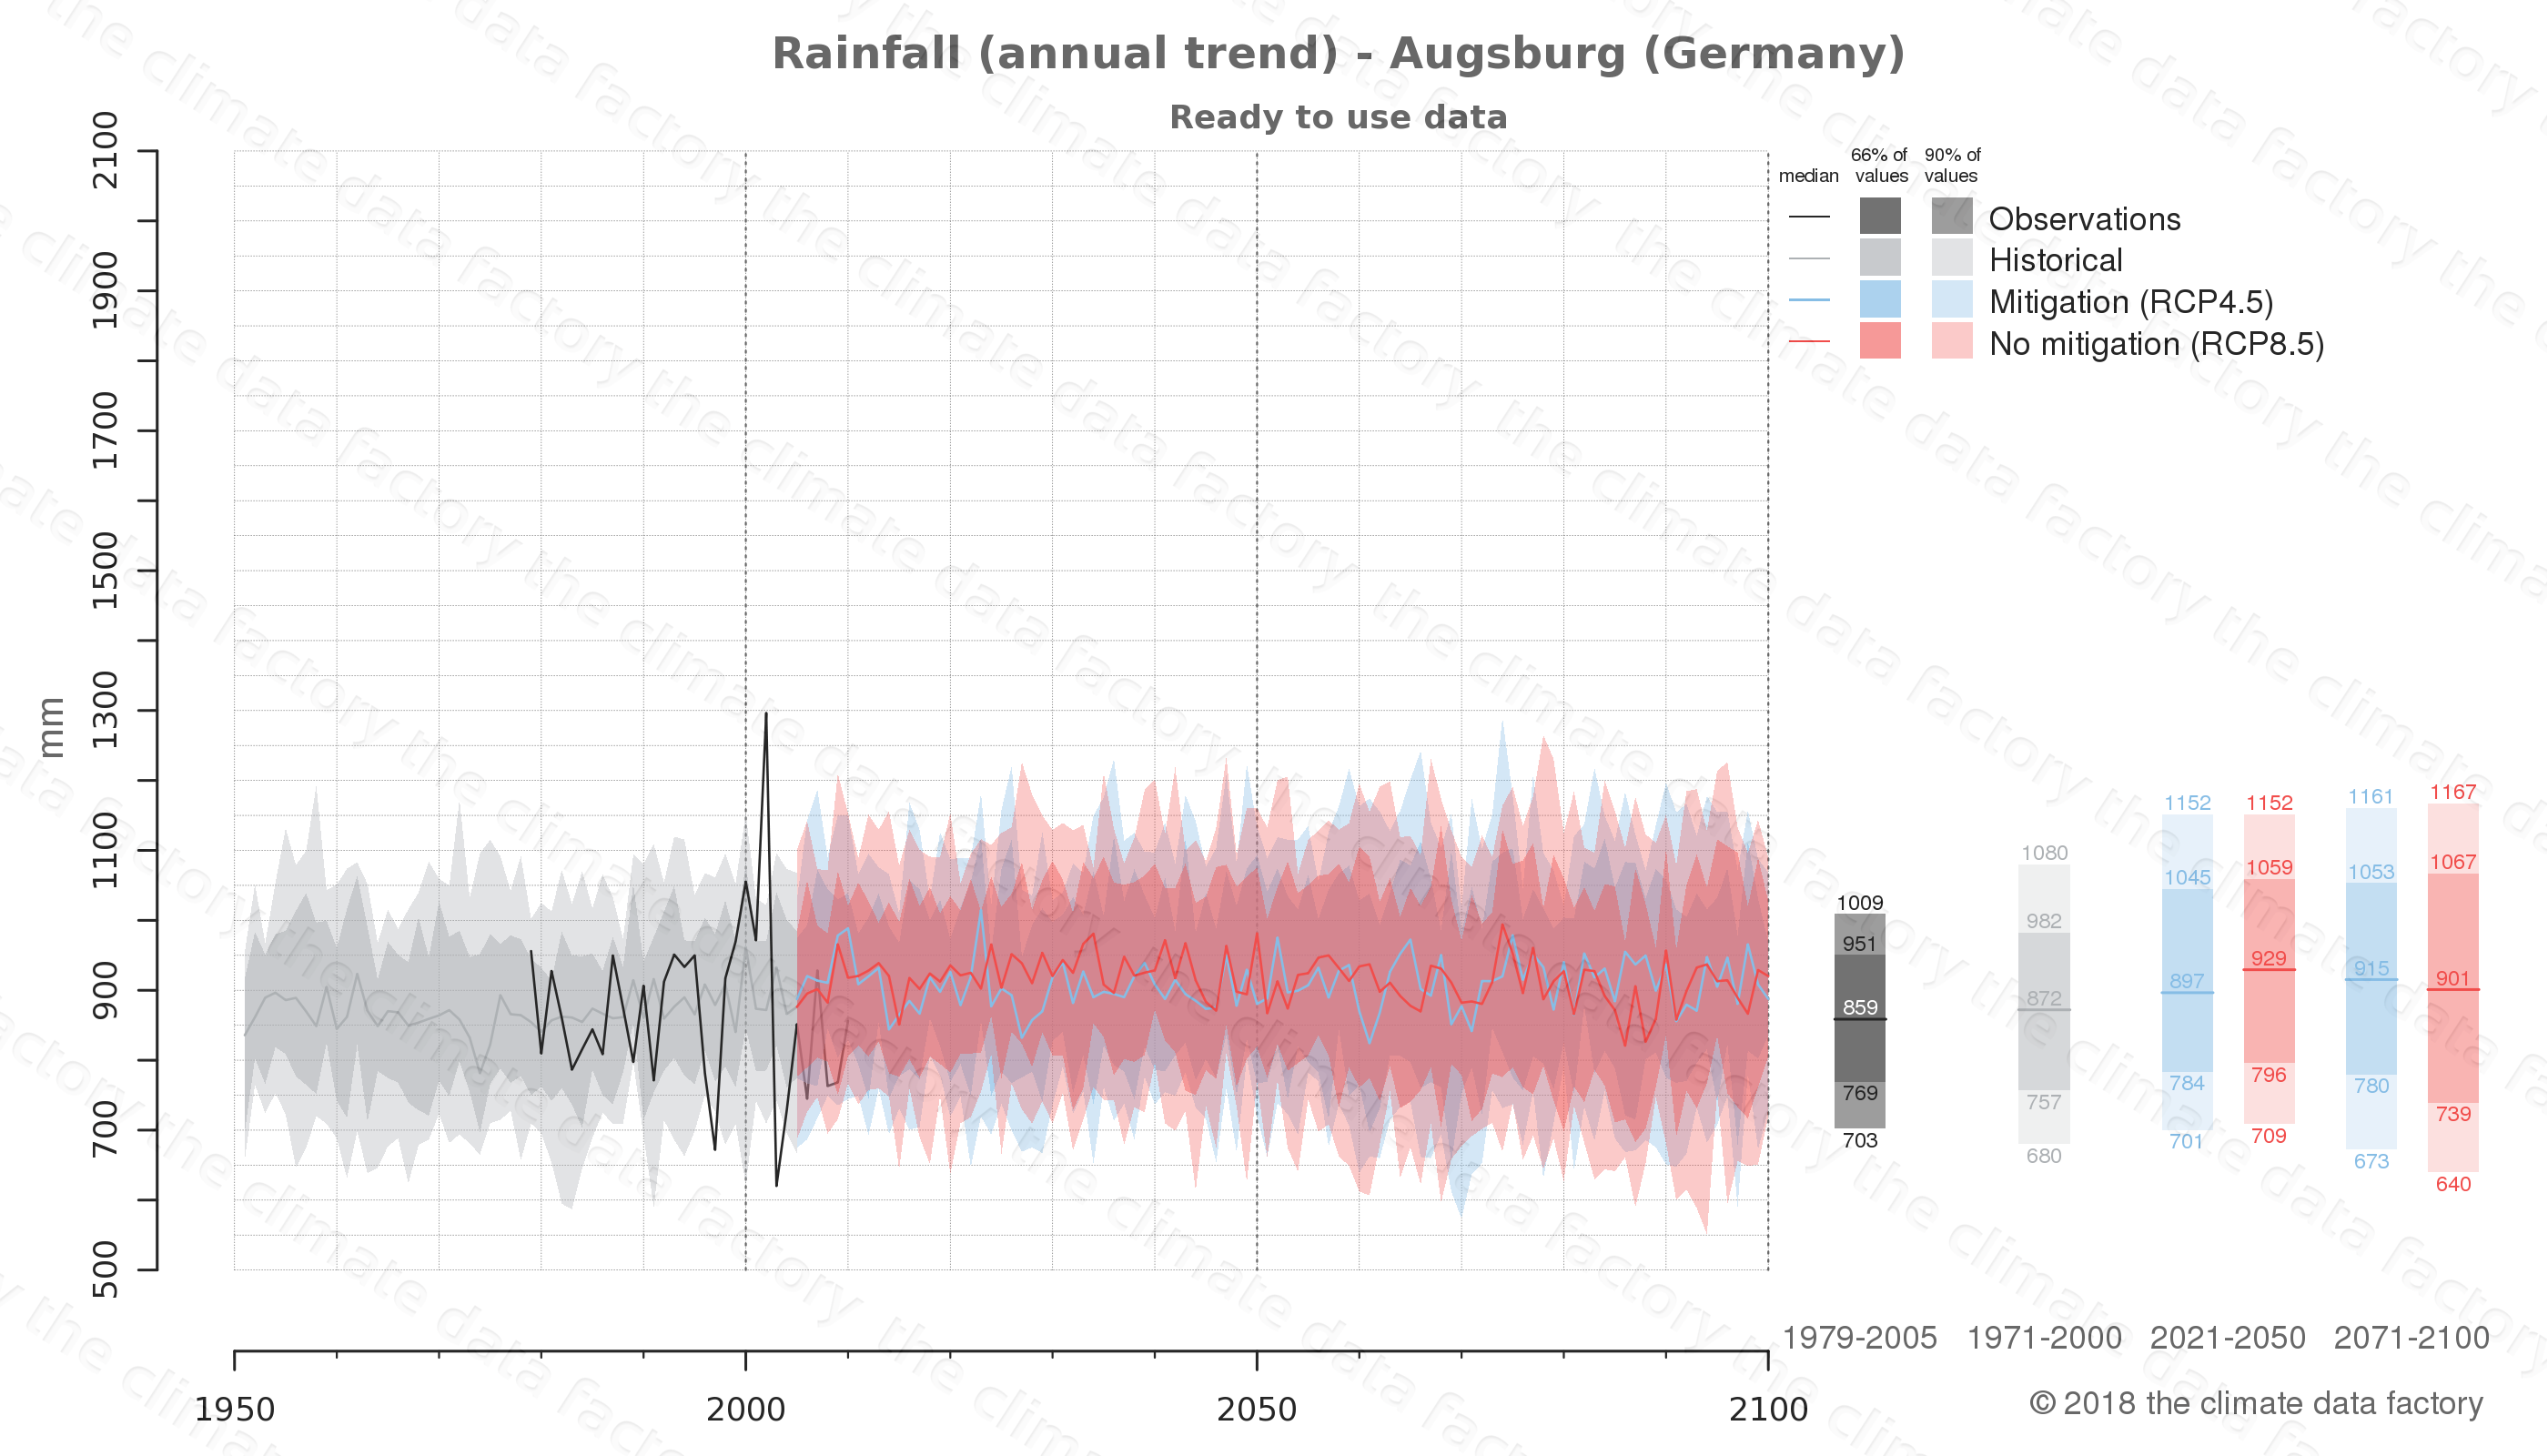 climate change data policy adaptation climate graph city data rainfall augsburg germany